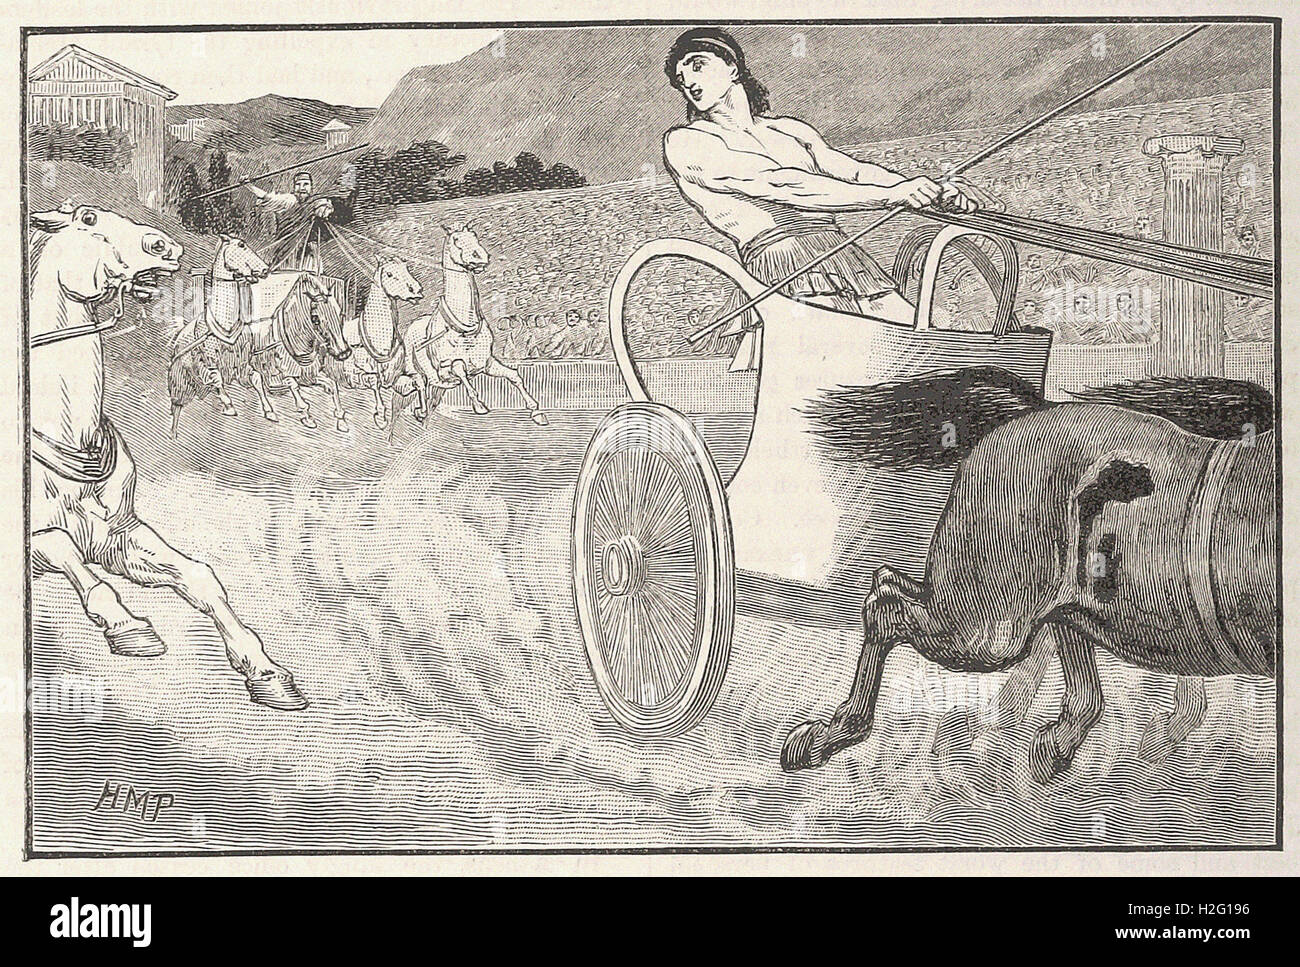 CLISTHENES AT THE OLYMPIC GAMES - from 'Cassell's Illustrated Universal History' - 1882 Stock Photo